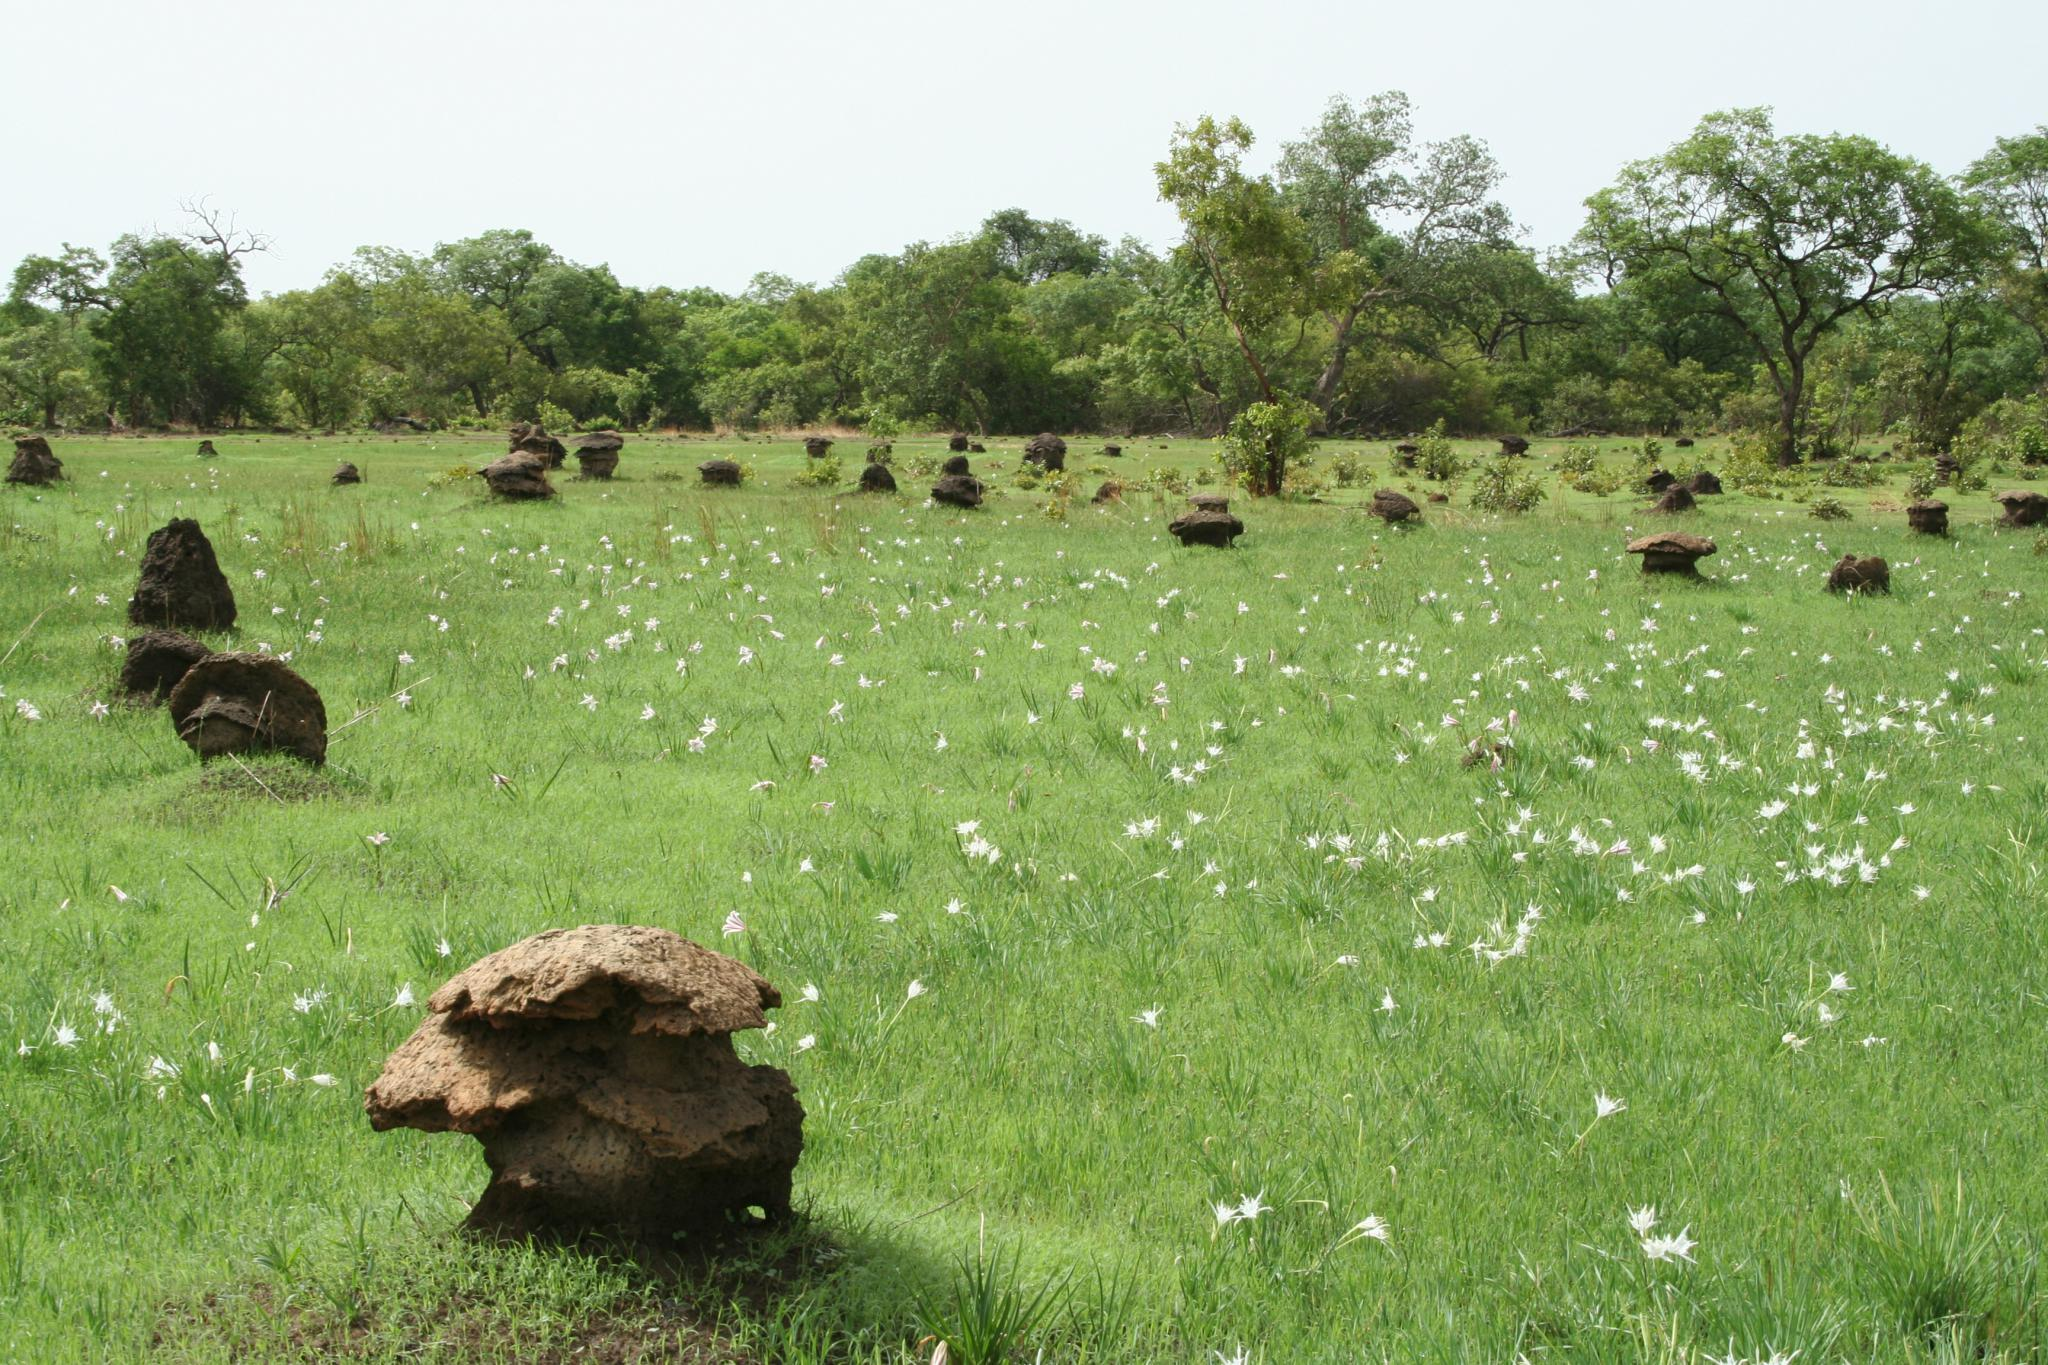 Bowé with characteristic mushroom-shaped termite mounds © Gray Tappan/USGS